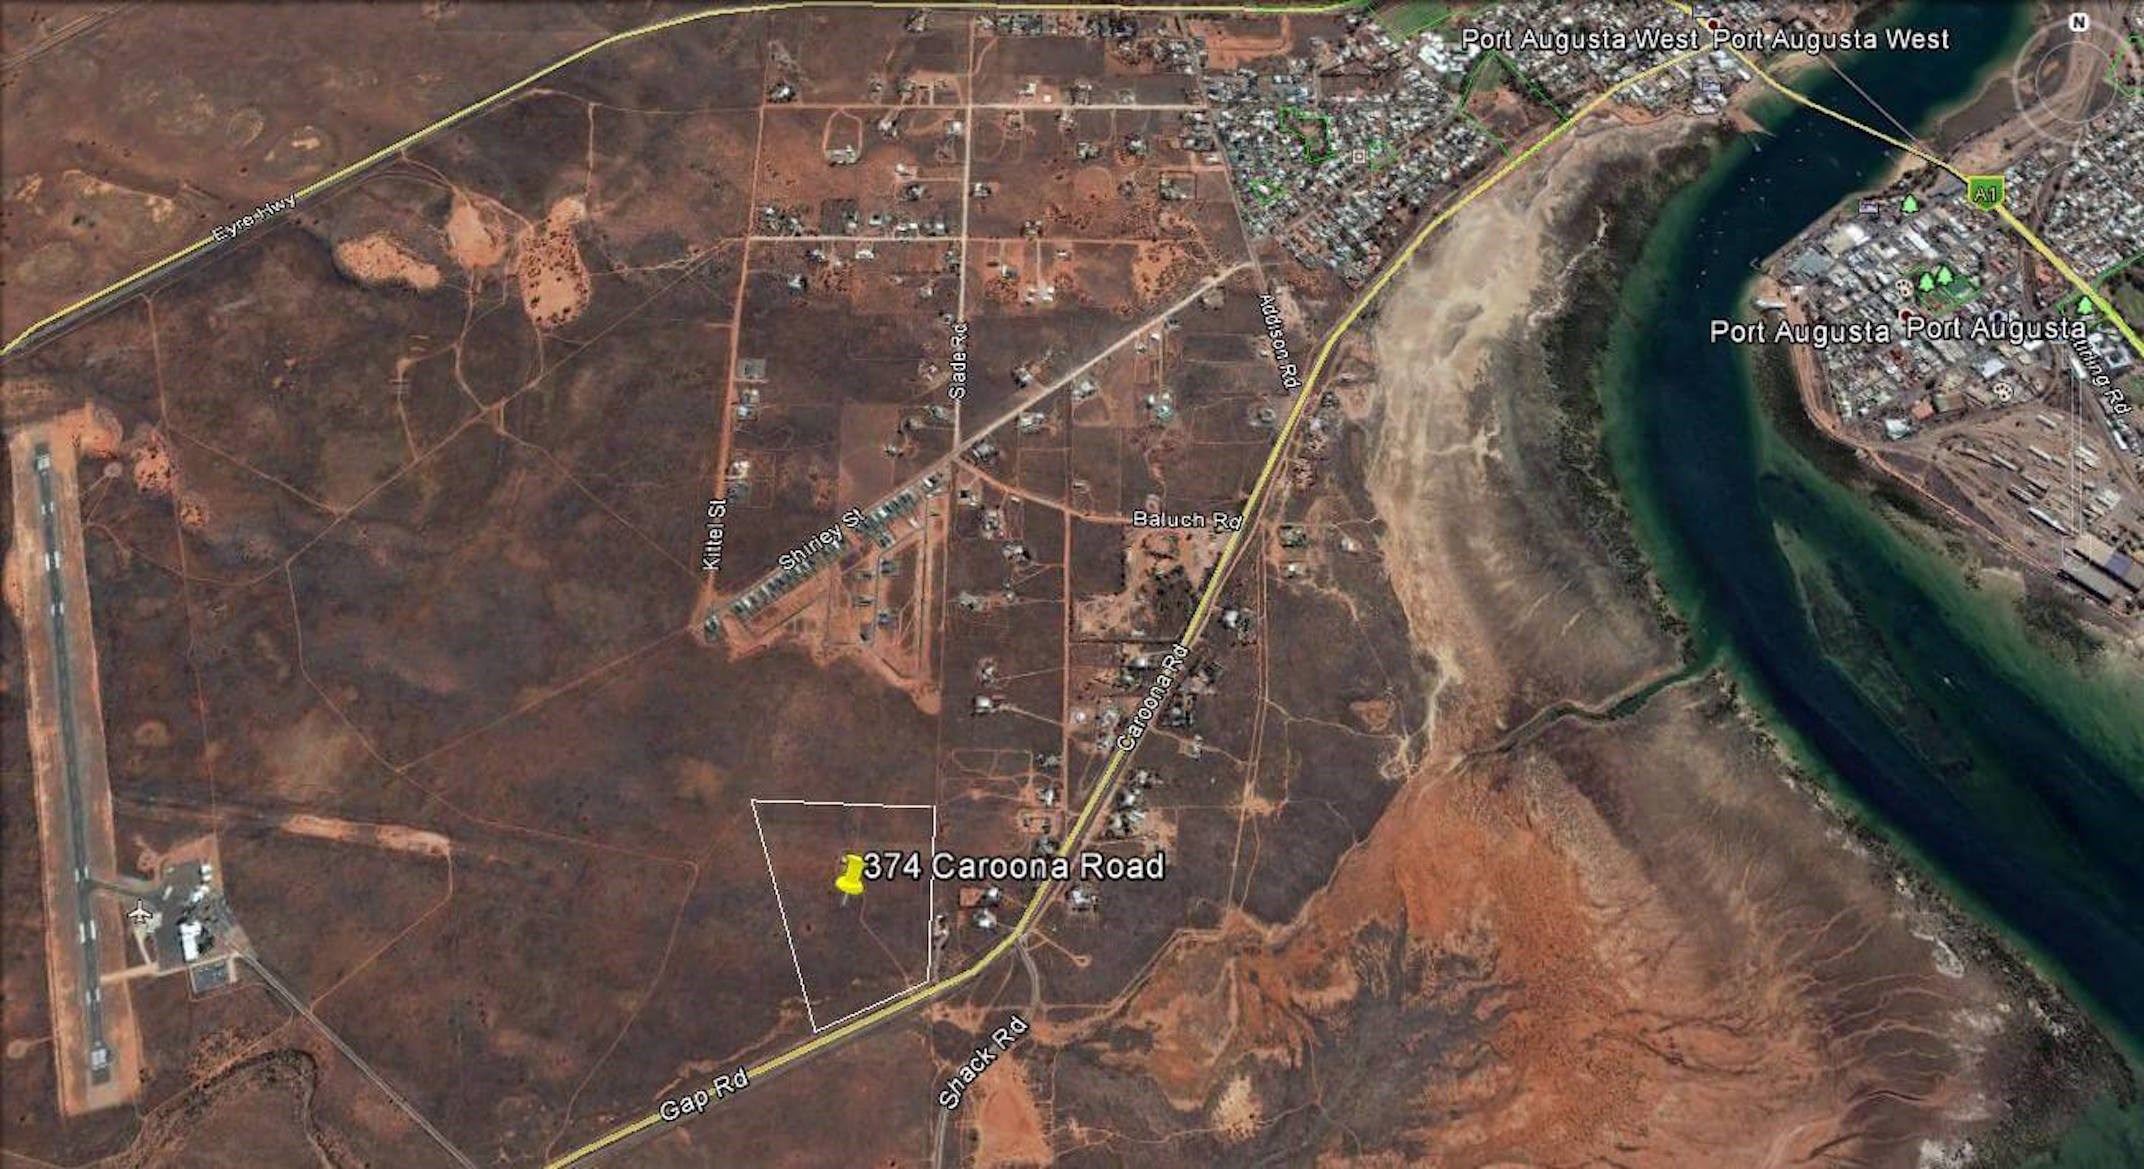 374 Caroona Road Port Augusta West SA 5700